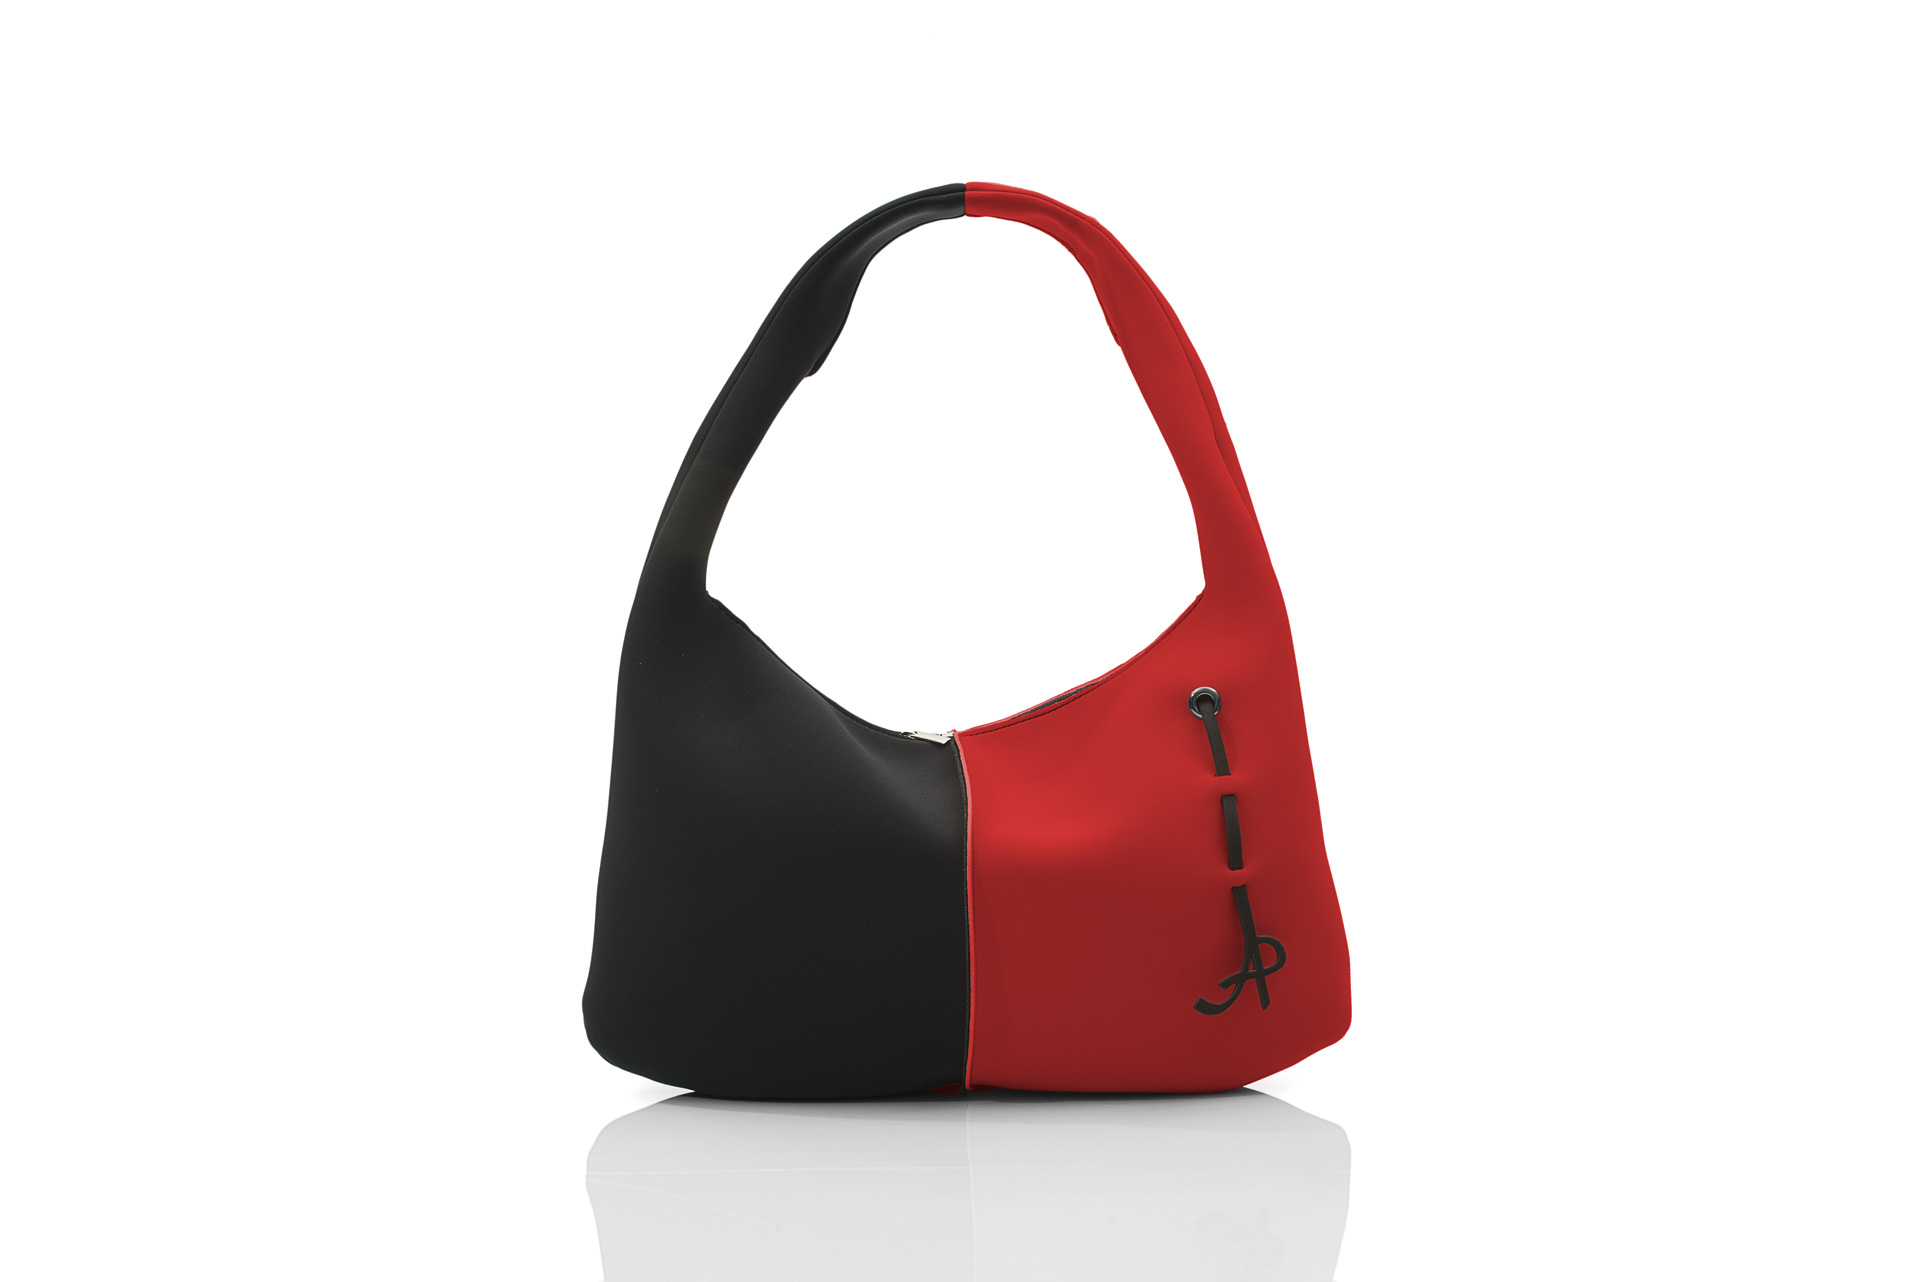 Around is a women's handbag from the SOFT line - AP collection by Artpelle.